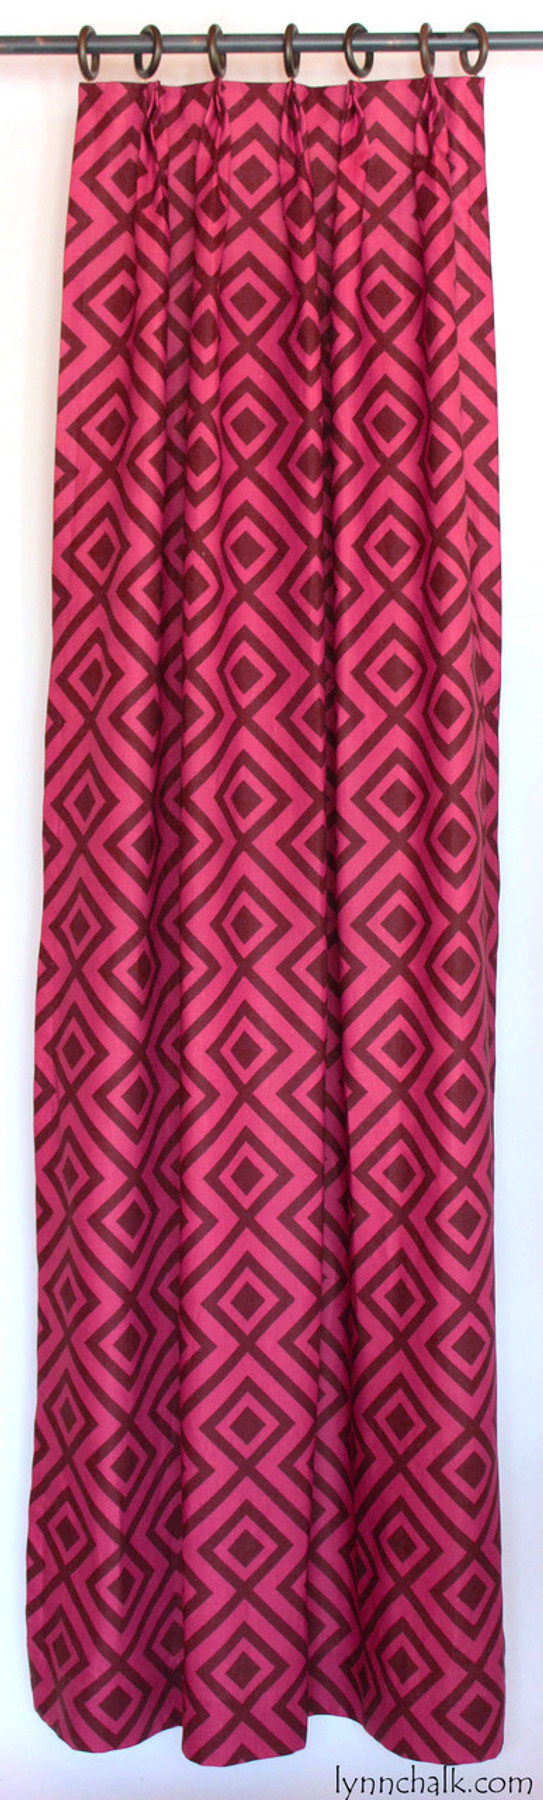 David Hicks Lee Jofa La Fiorentina Custom Drapes (shown in Wine/Magenta-comes in other colors)